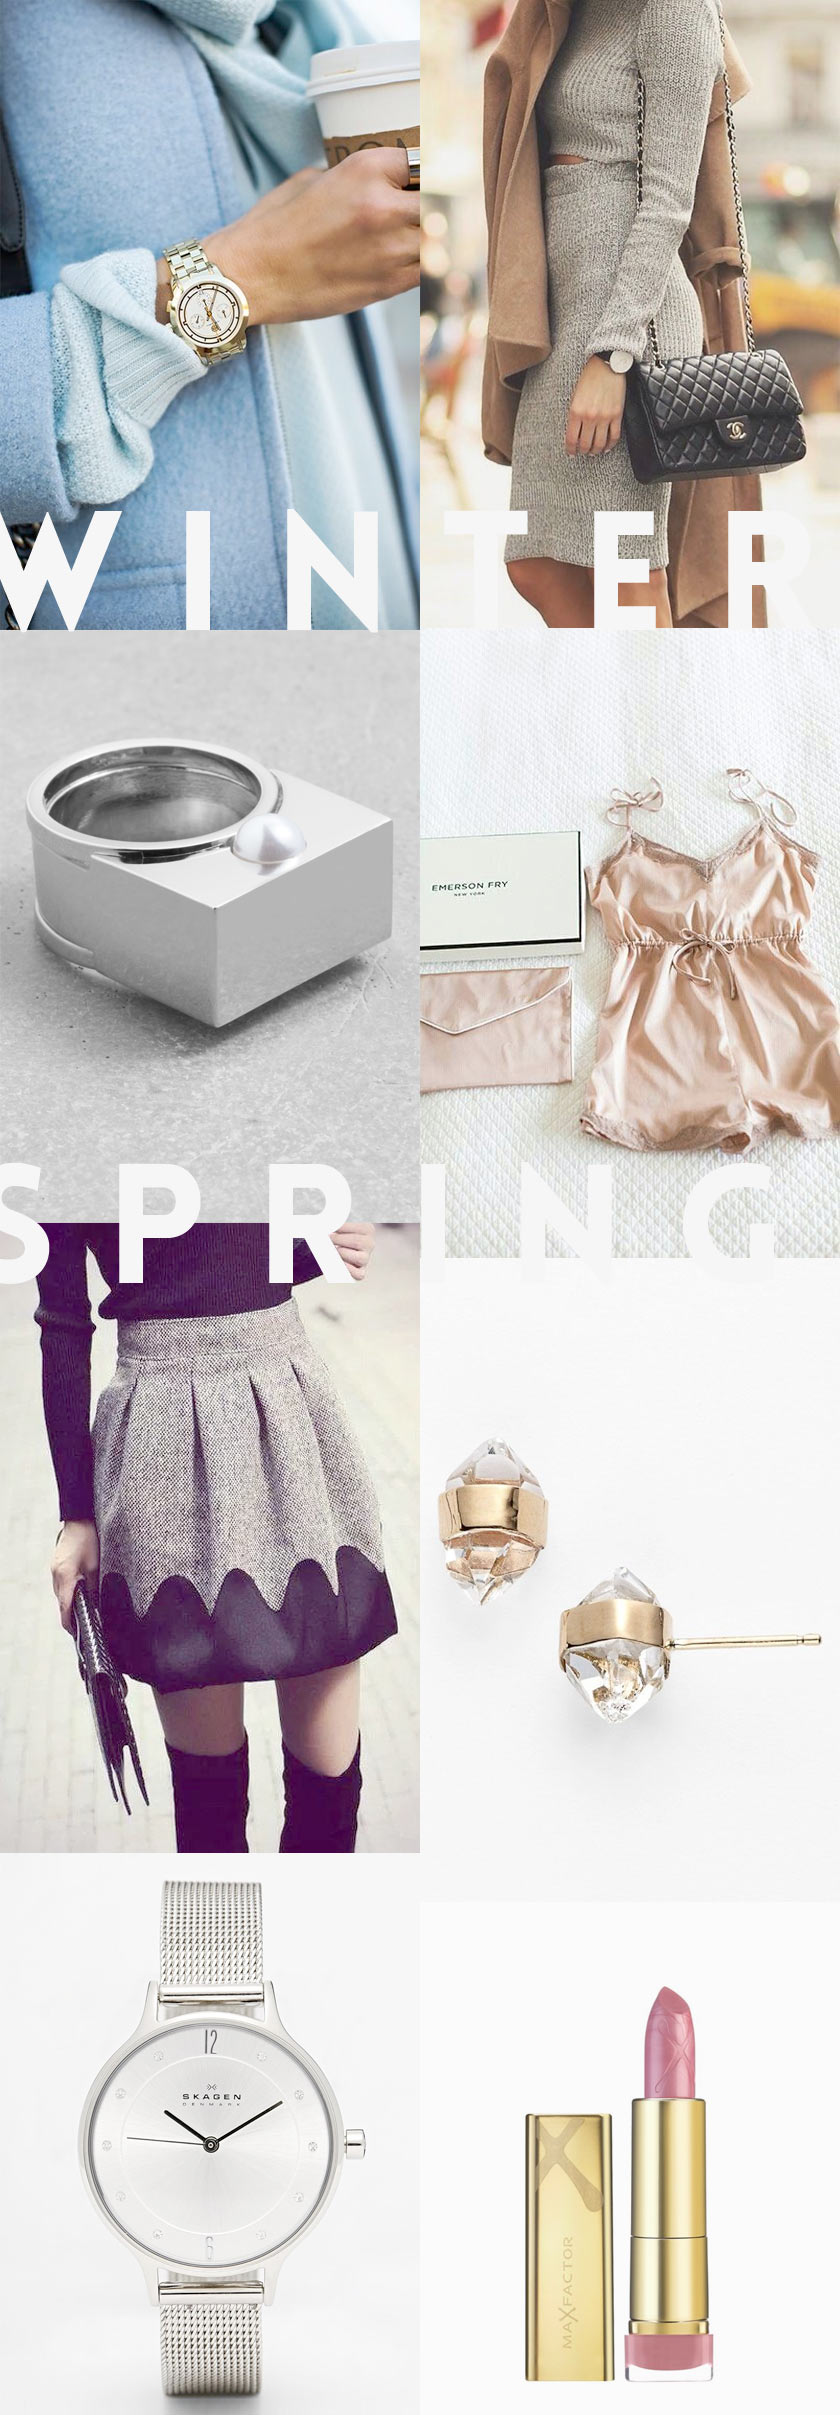 Winter_Spring_Fashion_Inspiration_2015